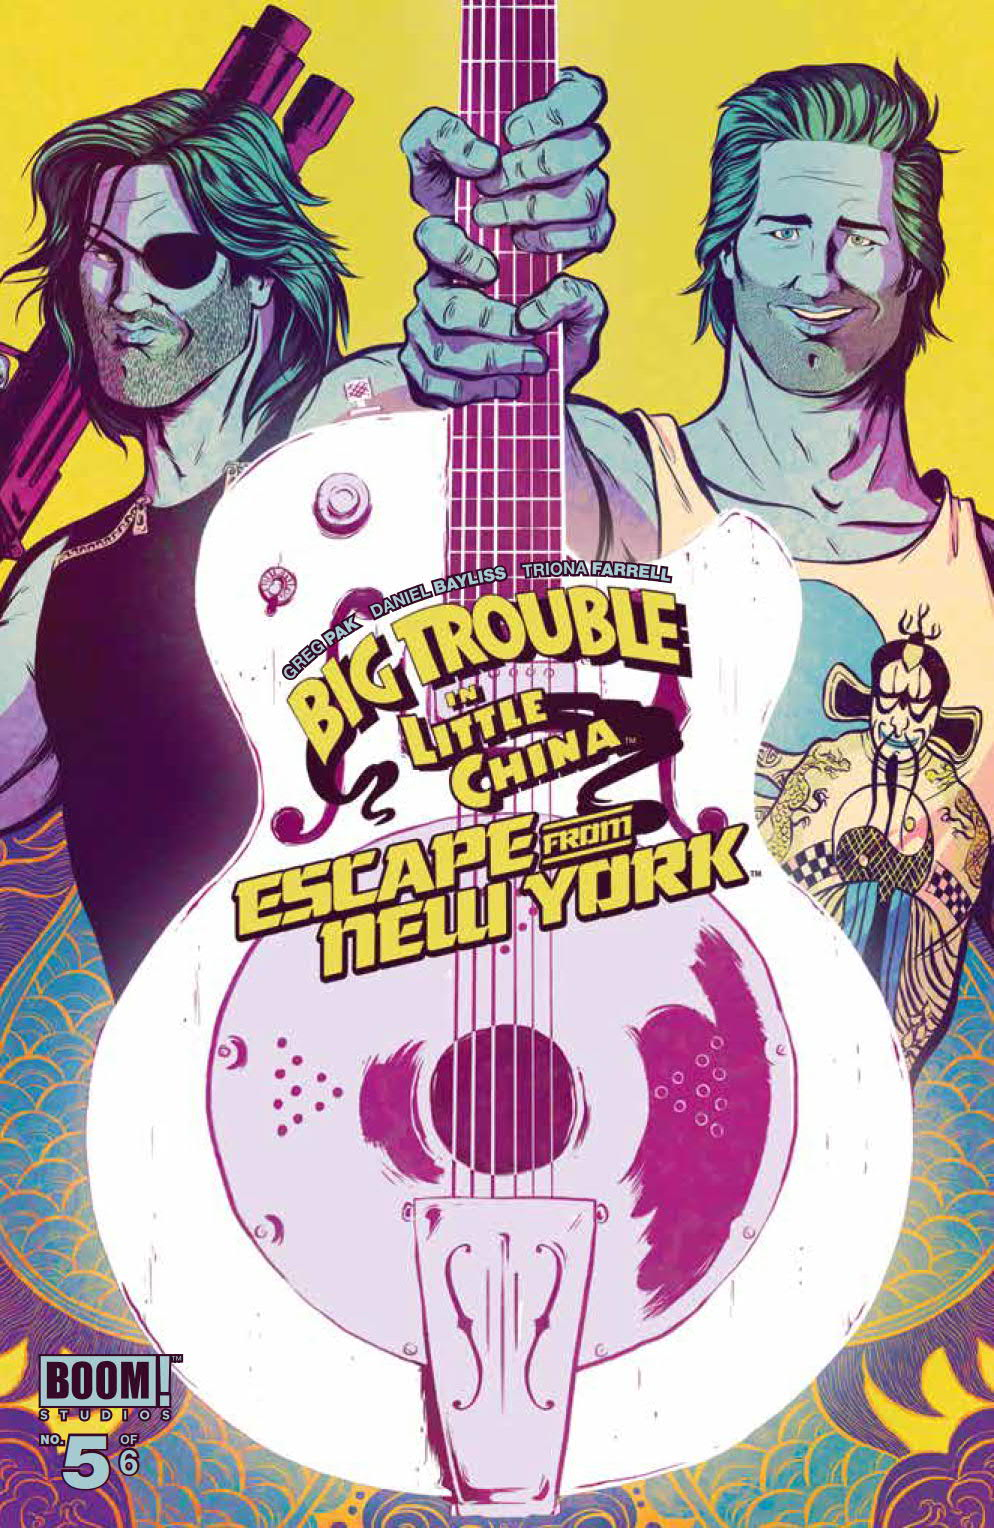 img - Big Trouble in Little China / Escape From New York #5 Review